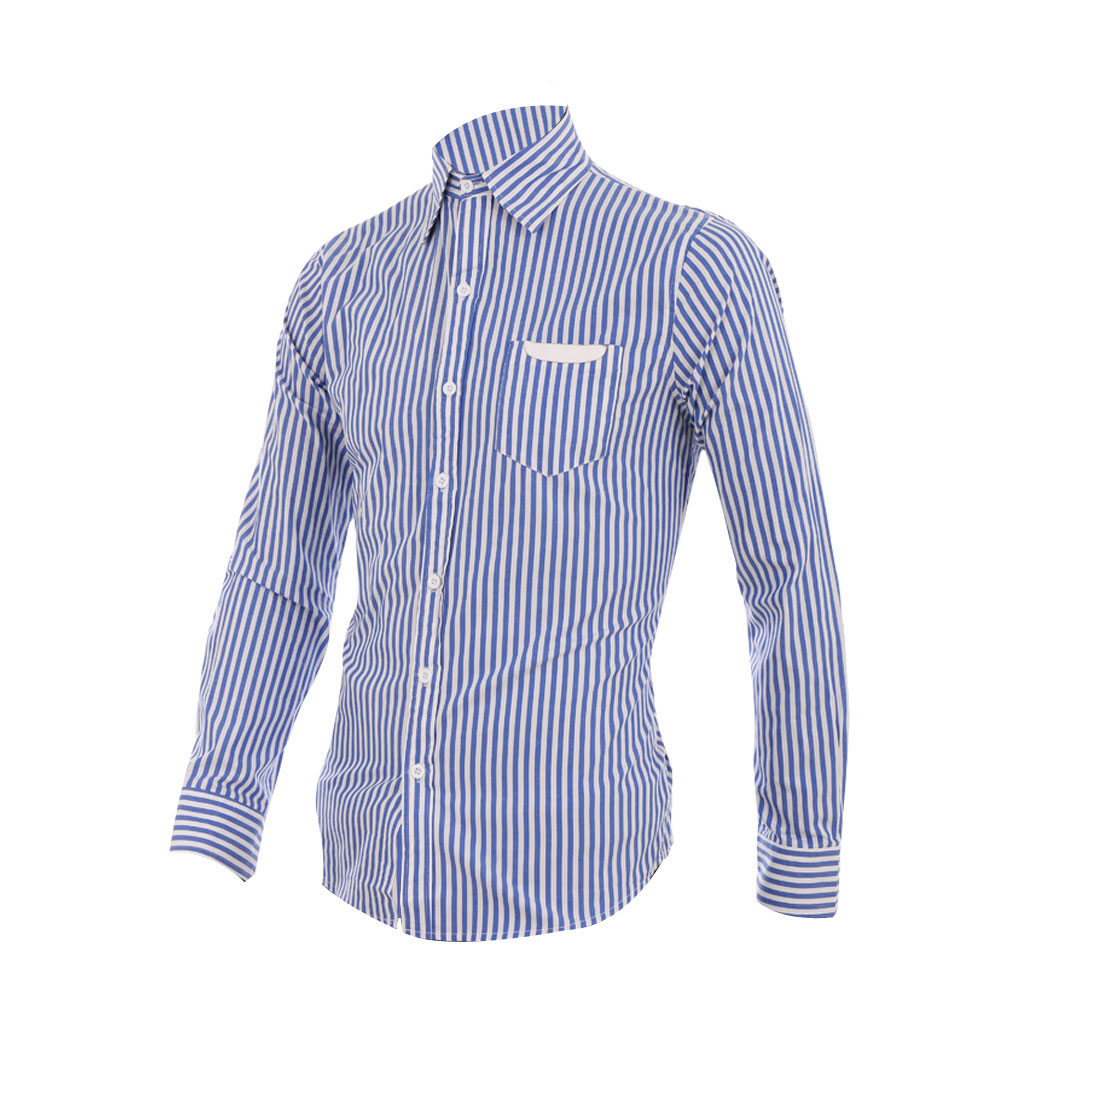 Man Stylish Blue White Stripes Pattern Button Down Casual Shirt M